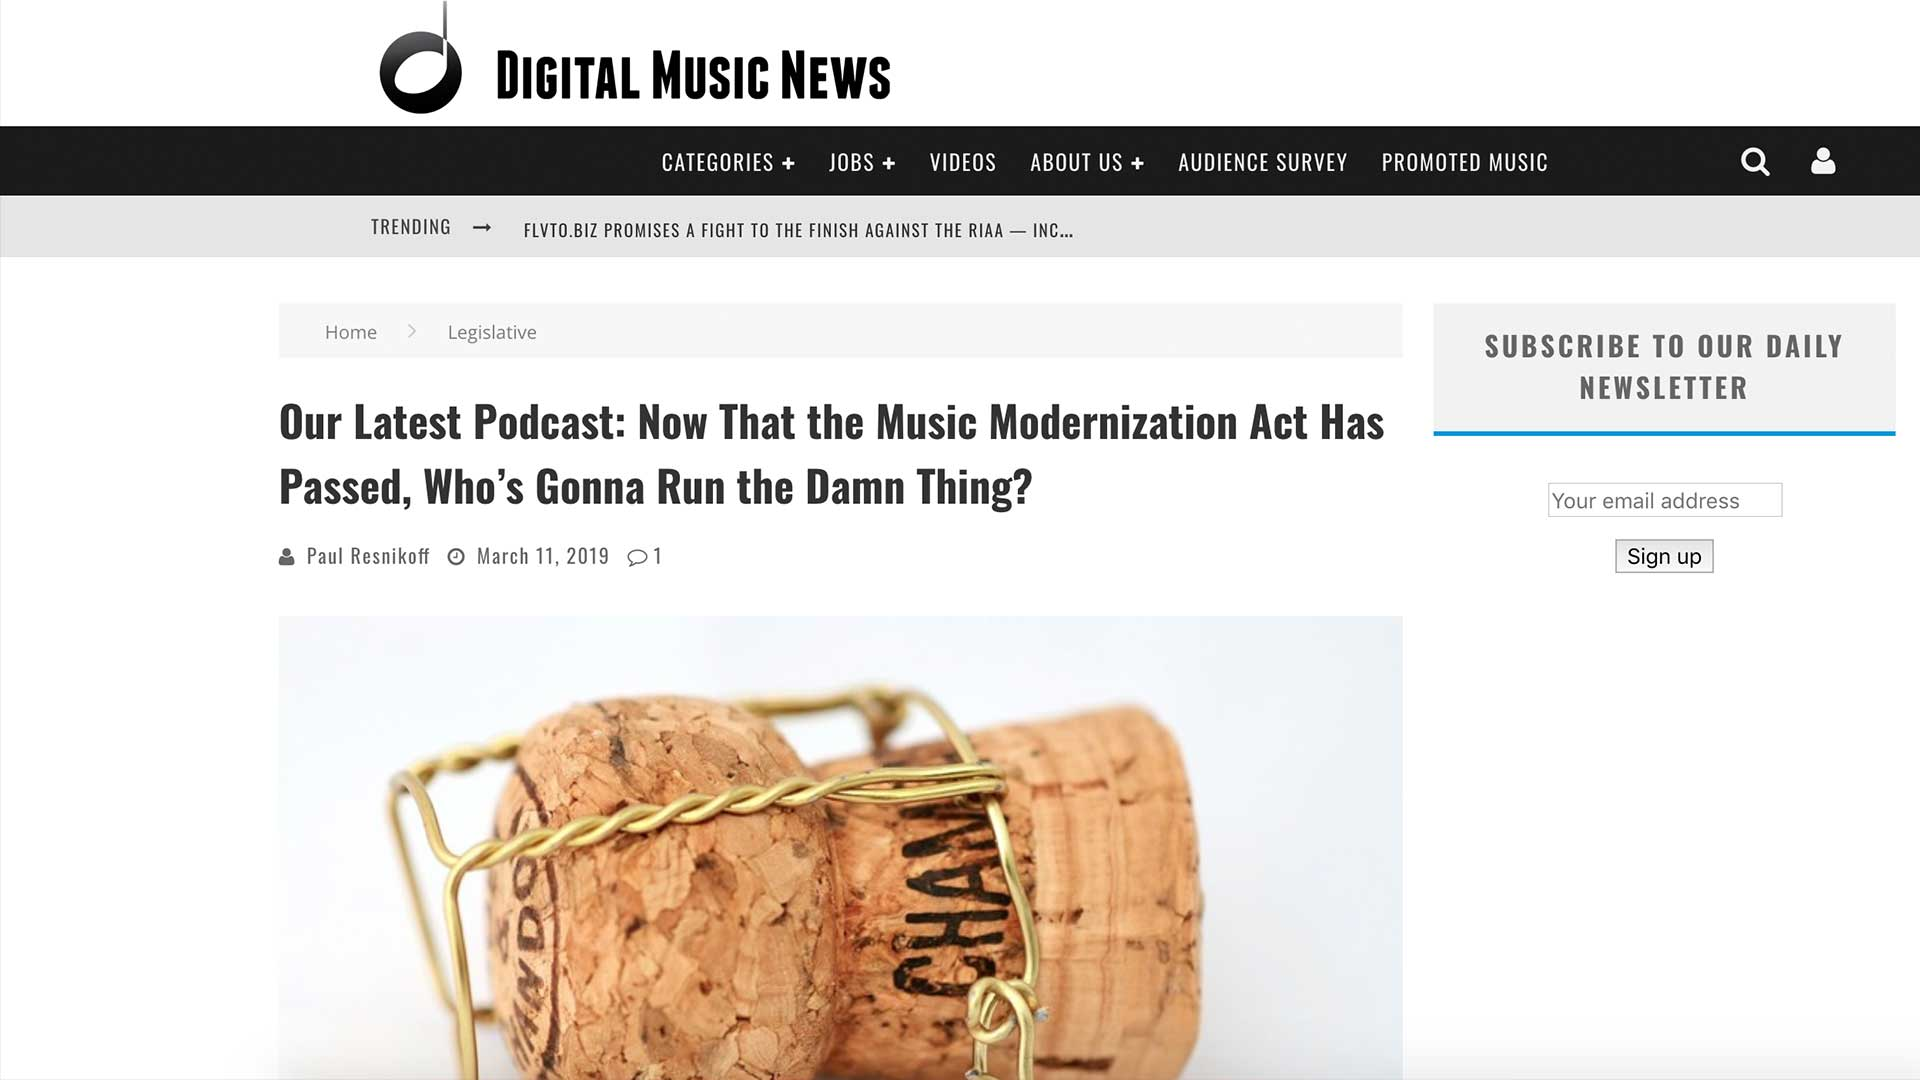 Fairness Rocks News Our Latest Podcast: Now That the Music Modernization Act Has Passed, Who's Gonna Run the Damn Thing?